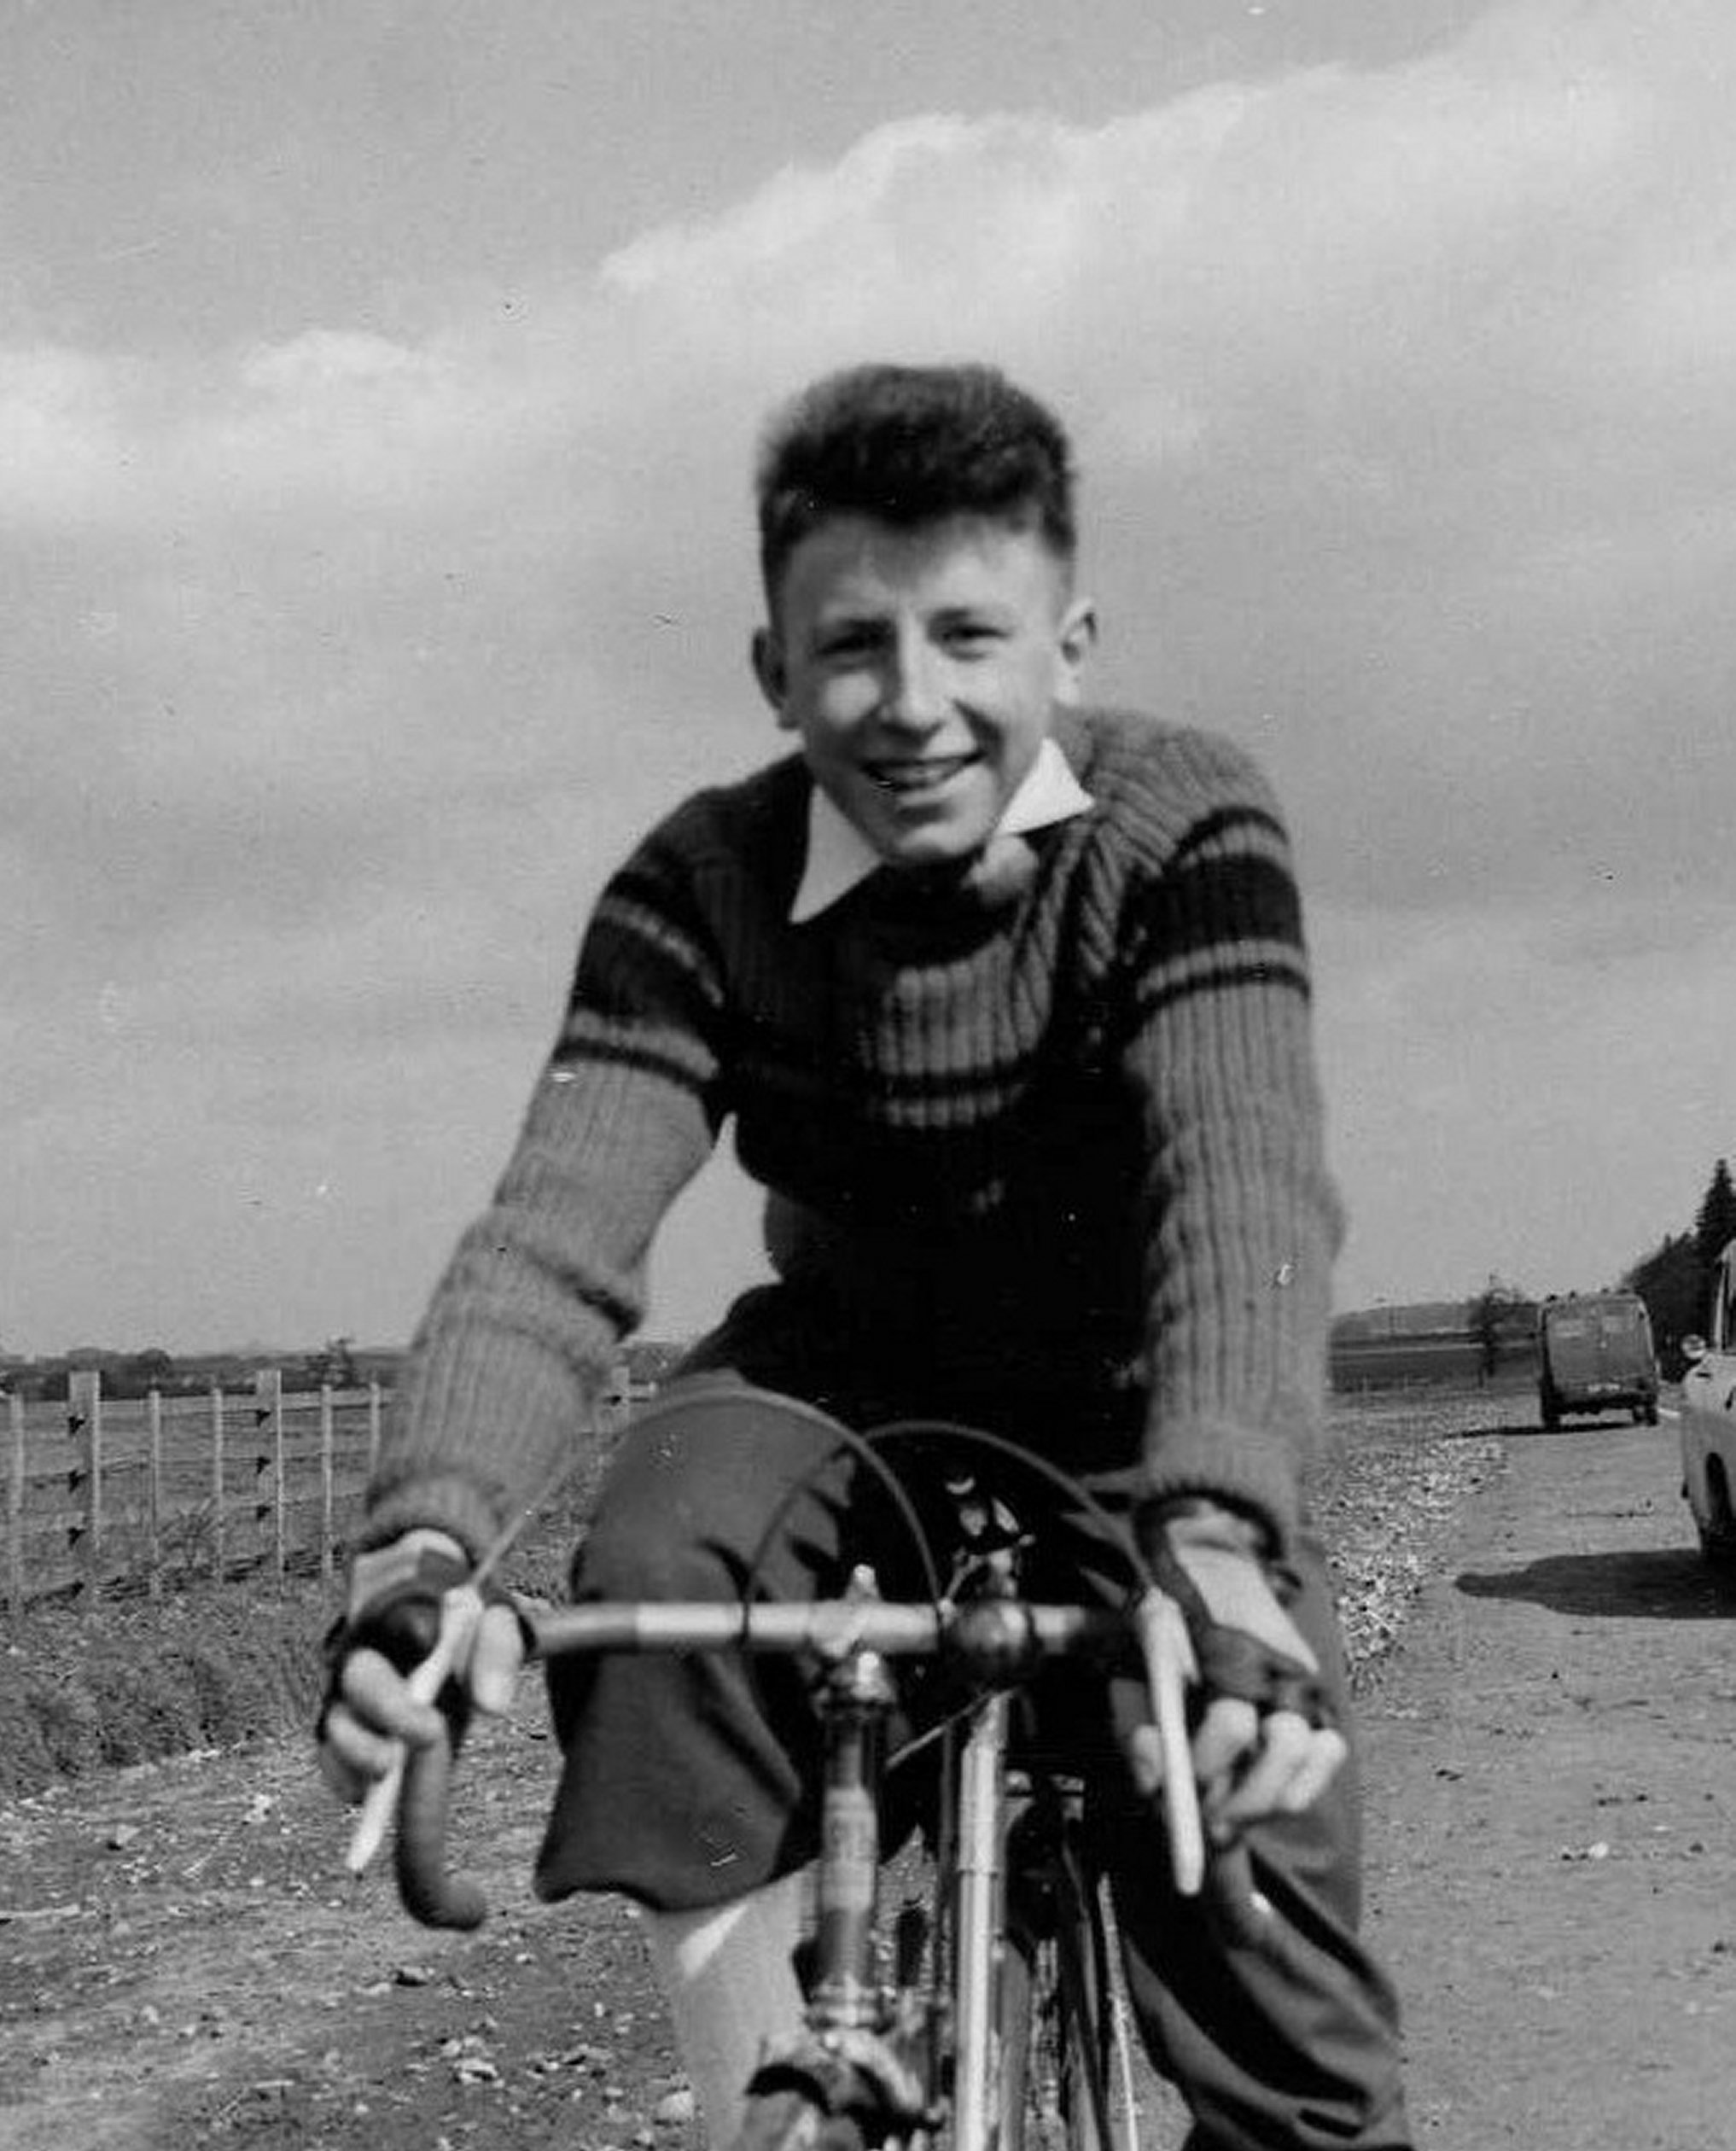 Graham Snowdon pictured after a local early morning time trial near Blyth, and about the join the day's club run perhaps to somewhere like Newark, in around 1958.